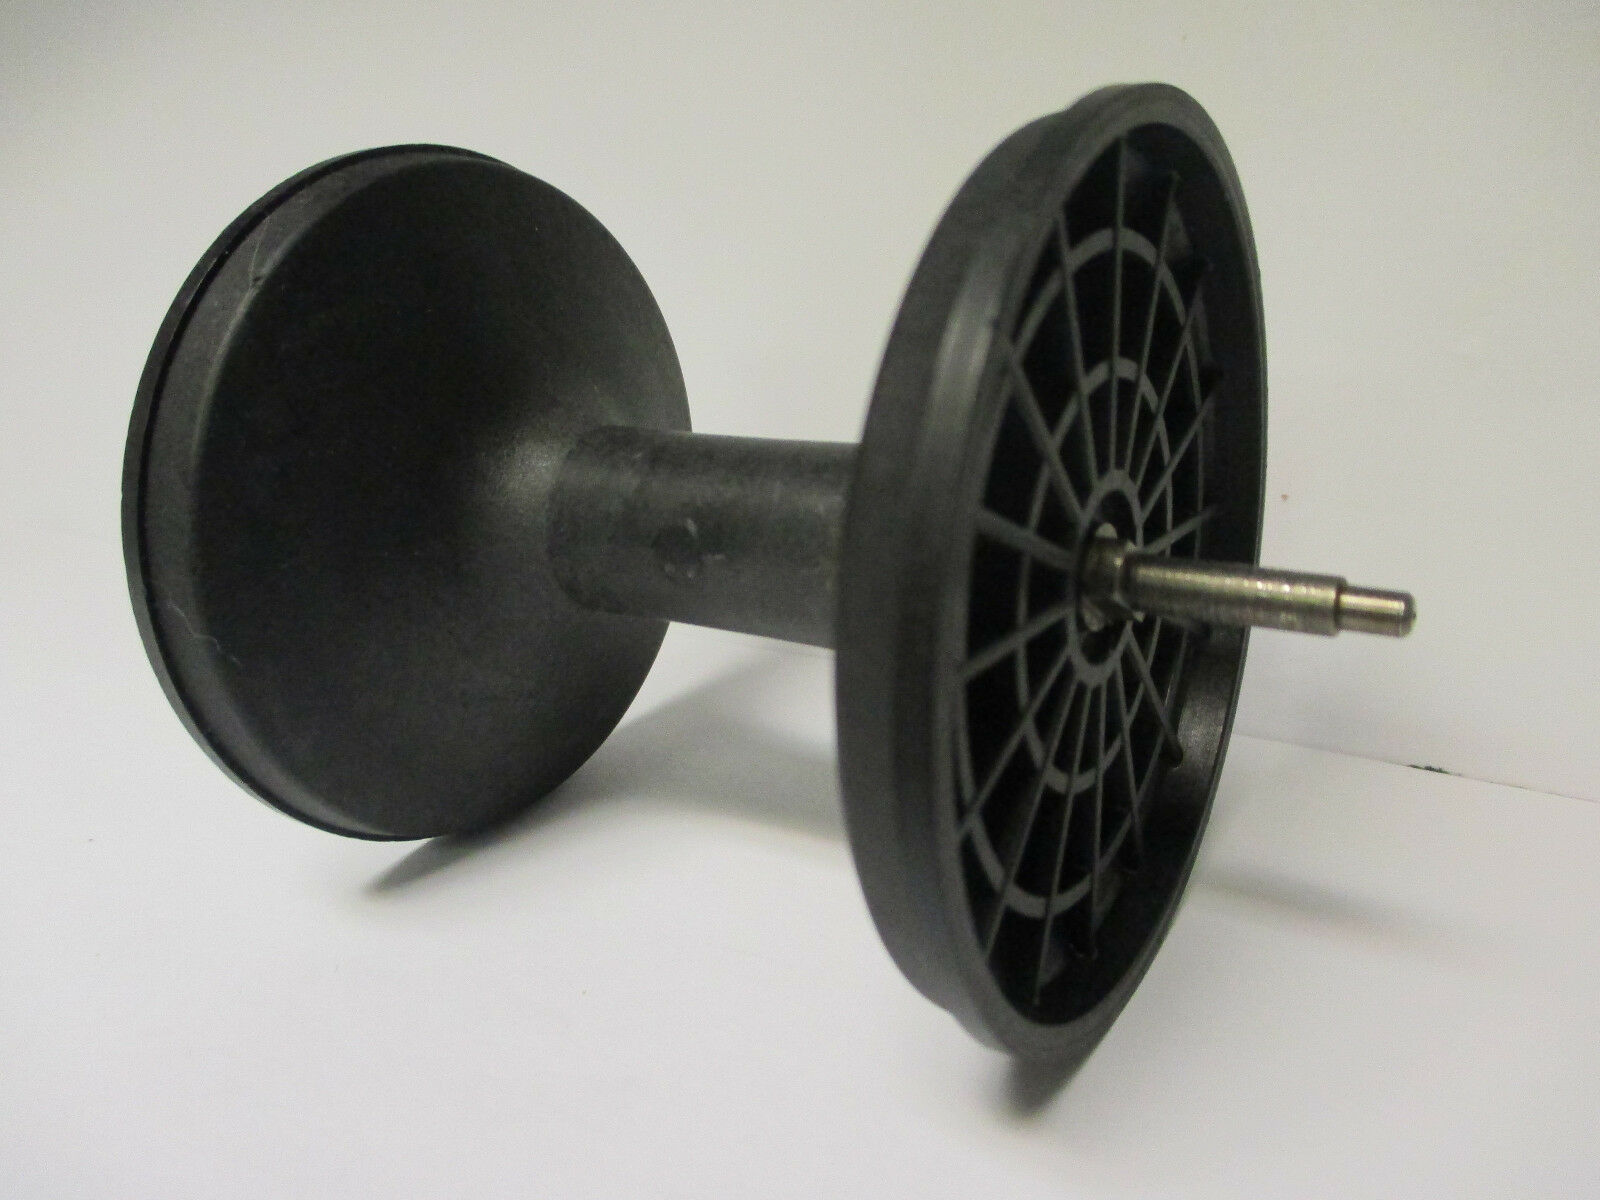 USED NEWELL BIG GAME REEL PART - G 447 F - Spool Assembly